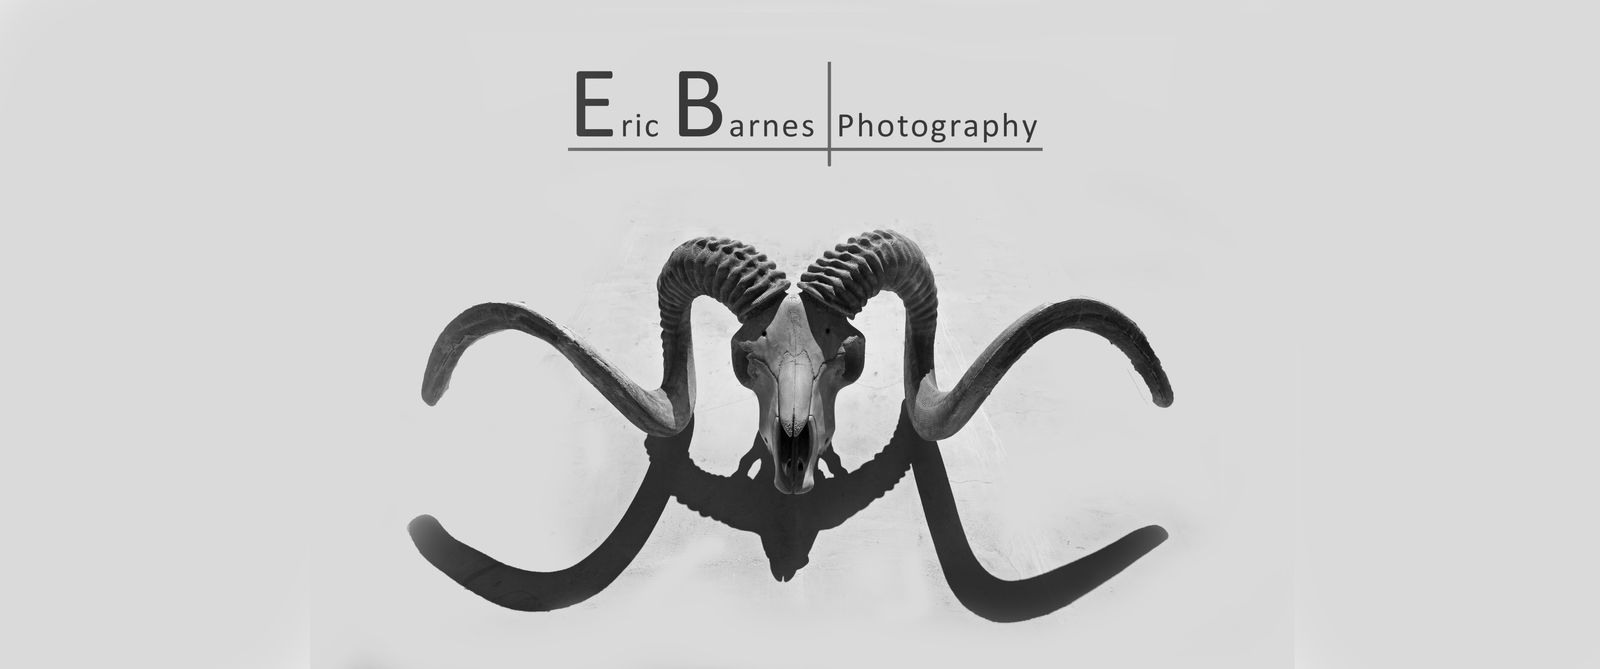 Eric Barnes Photography Cover Photo Art Cover Picture Creativity Eric Barnes Photography Logo Profile Picture